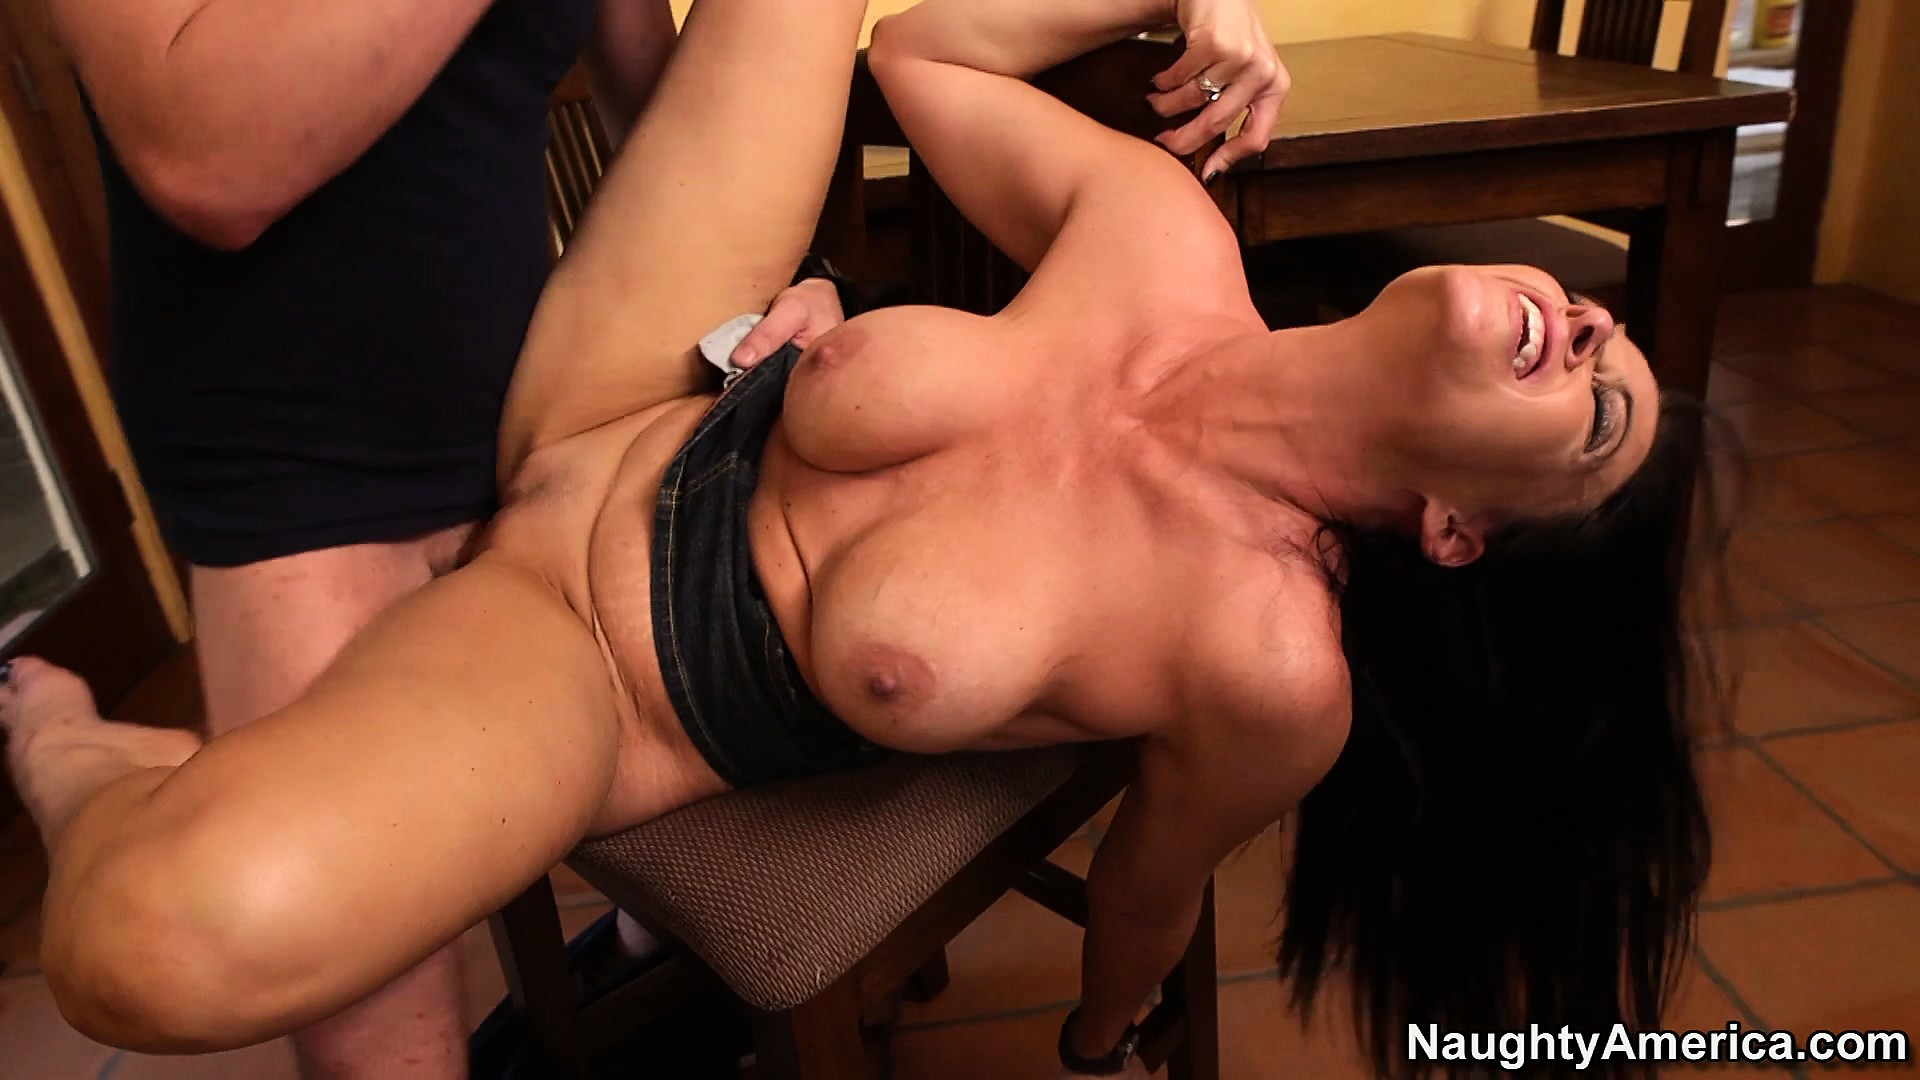 Porno Video of Busty Brunette Mom Vanilla Deville Gets Hammered Hard On The Kitchen Table